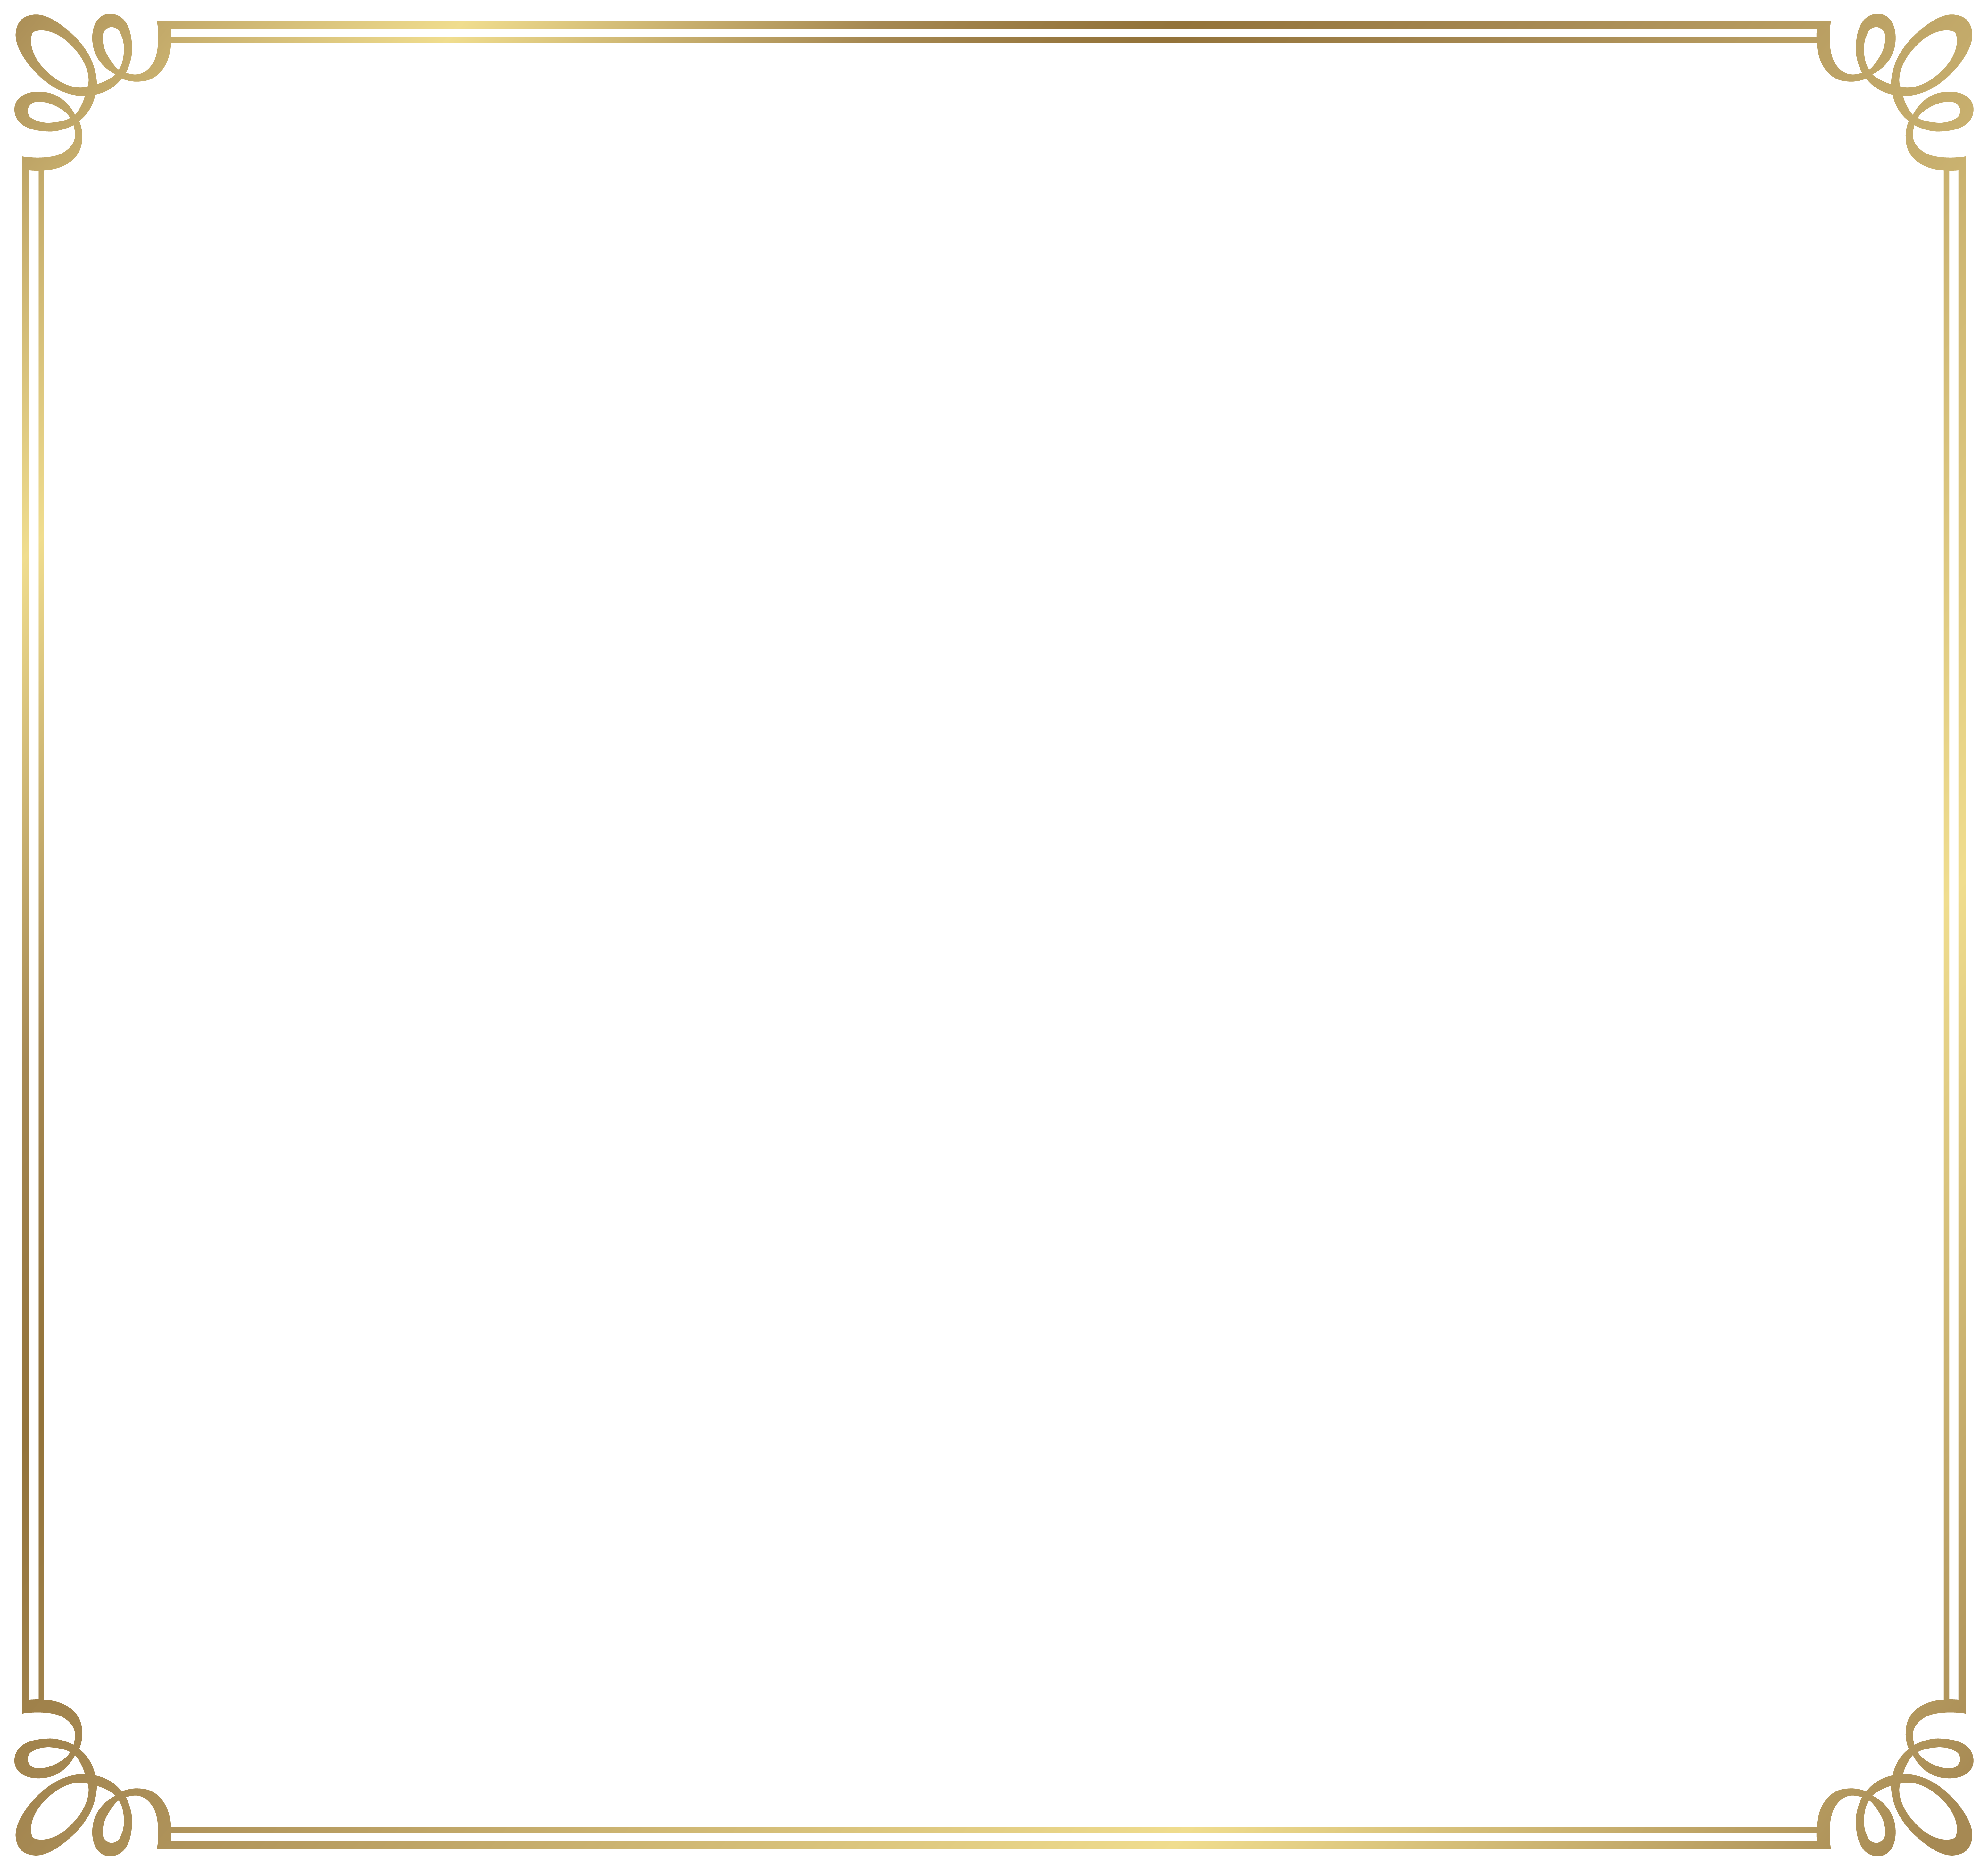 Ornate Borders Png - ClipArt Best